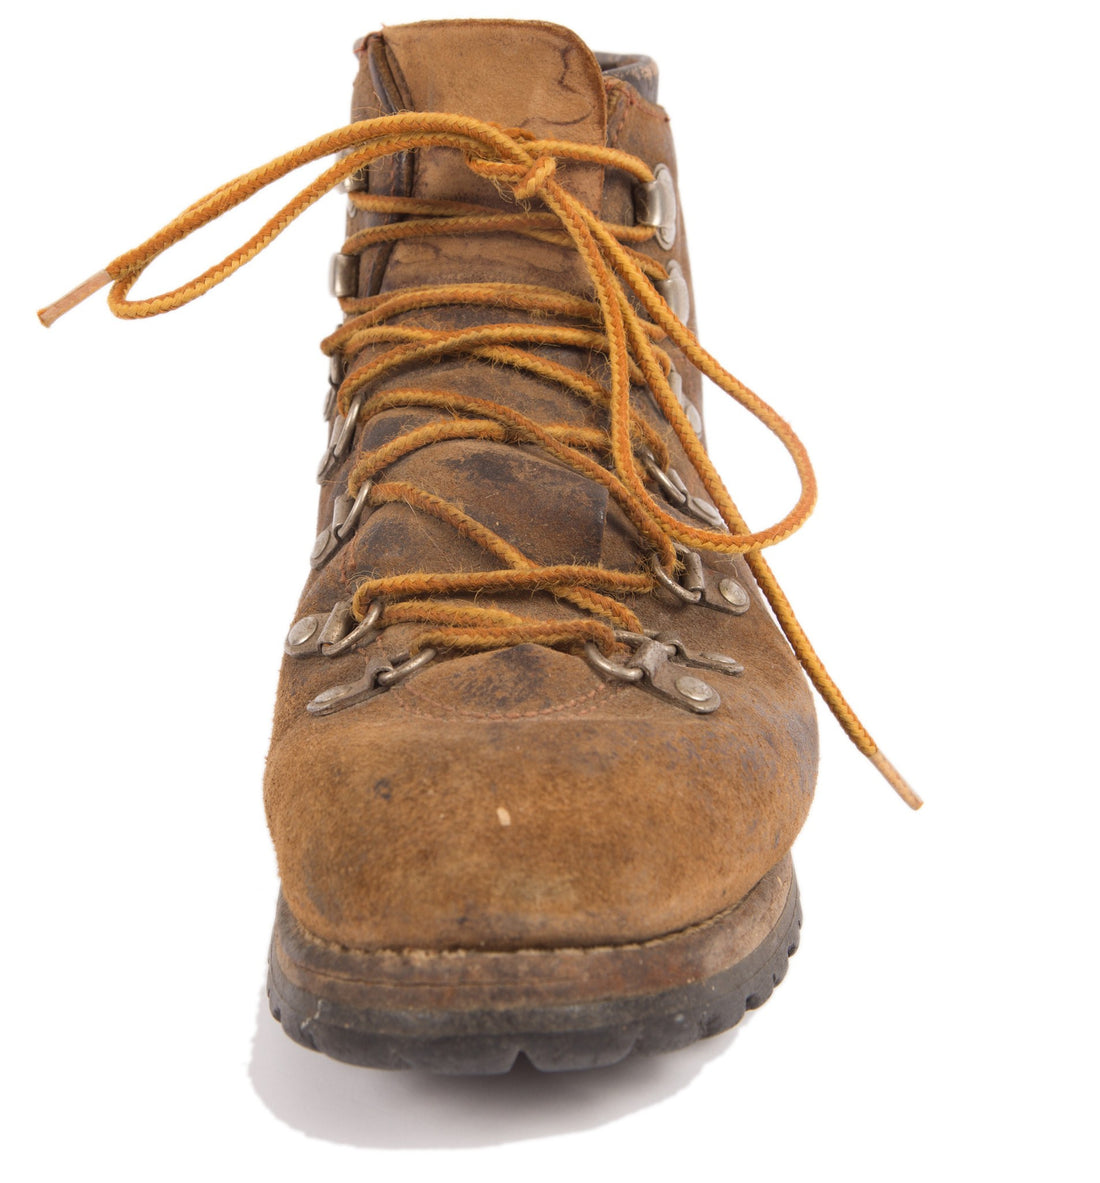 Vintage Vasque Hiking Boots, 8 1/2 - Vintage: Women's: Shoes - Iron and Resin